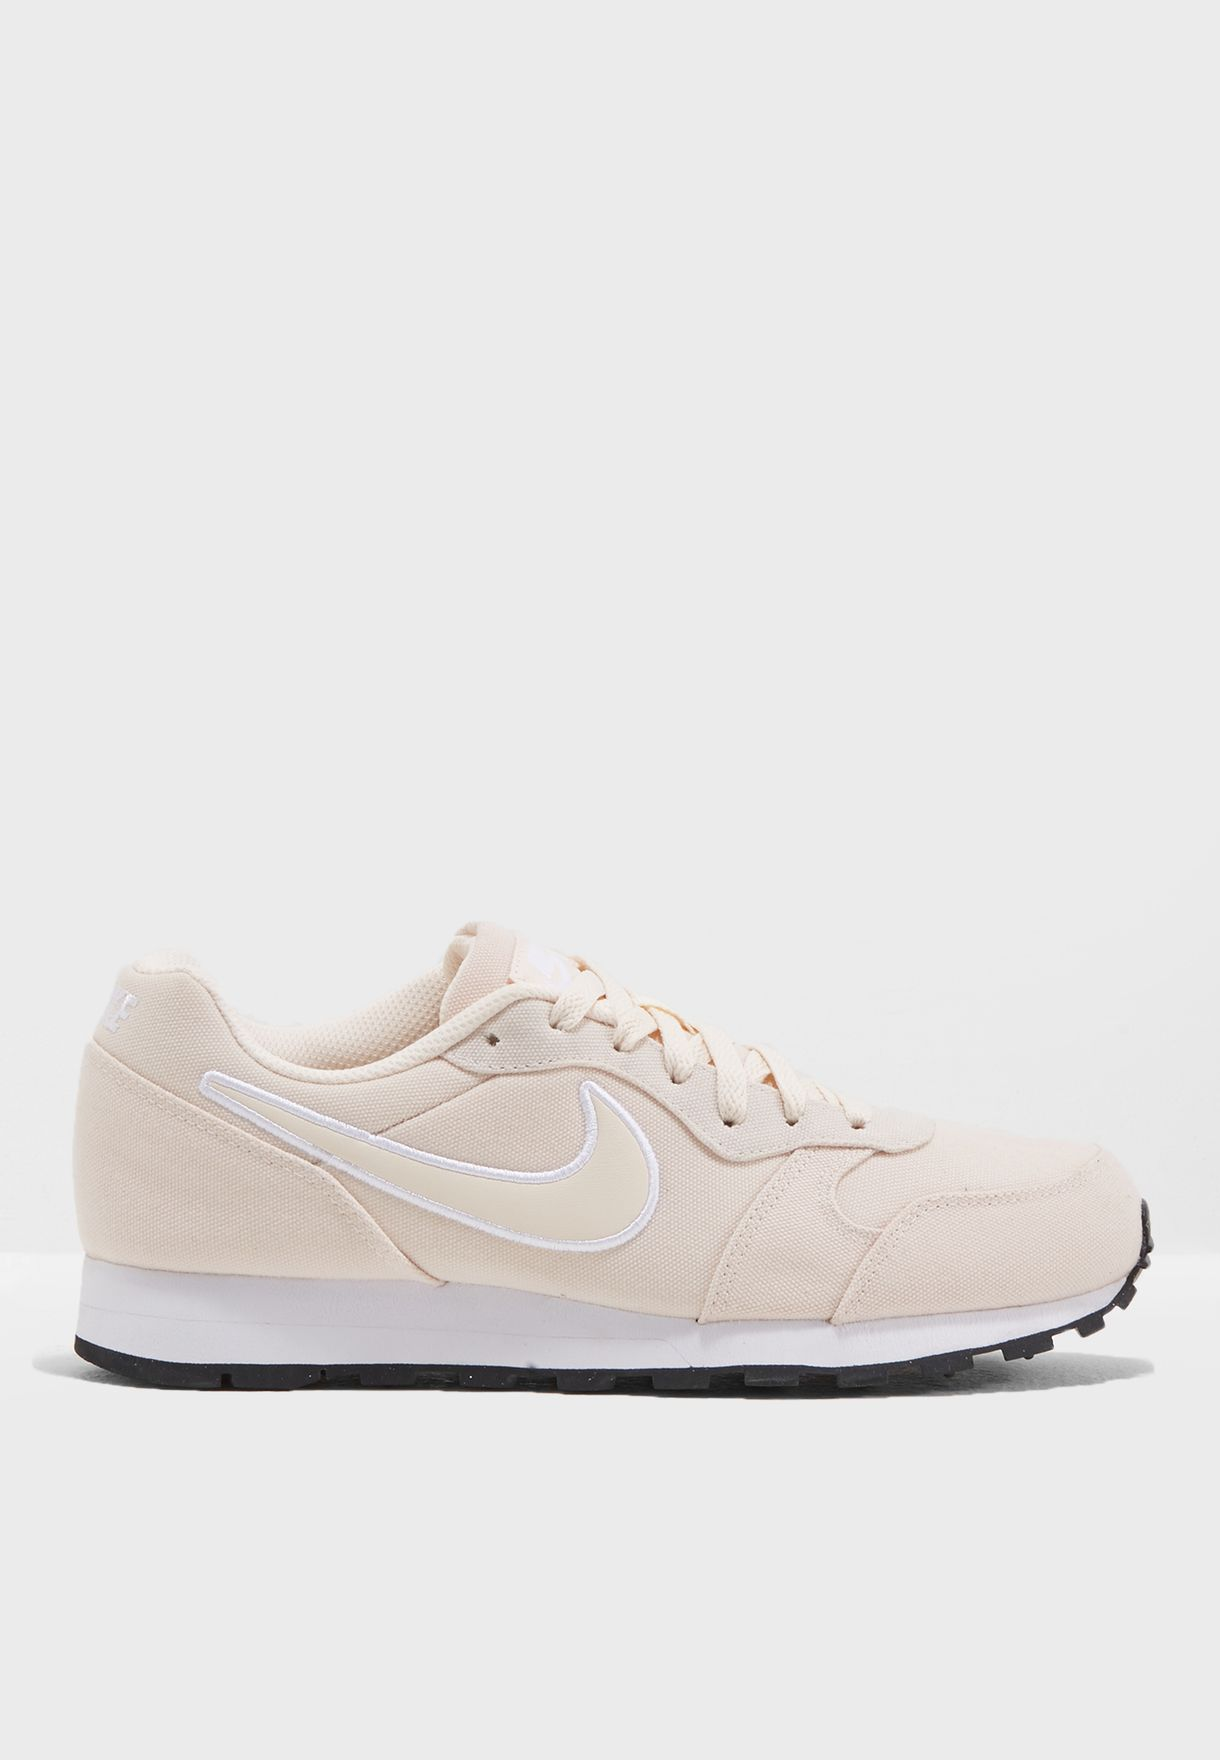 rico y magnífico 100% Calidad envío gratis Shop Nike neutrals MD Runner 2 SE AQ9121-800 for Women in Globally ...